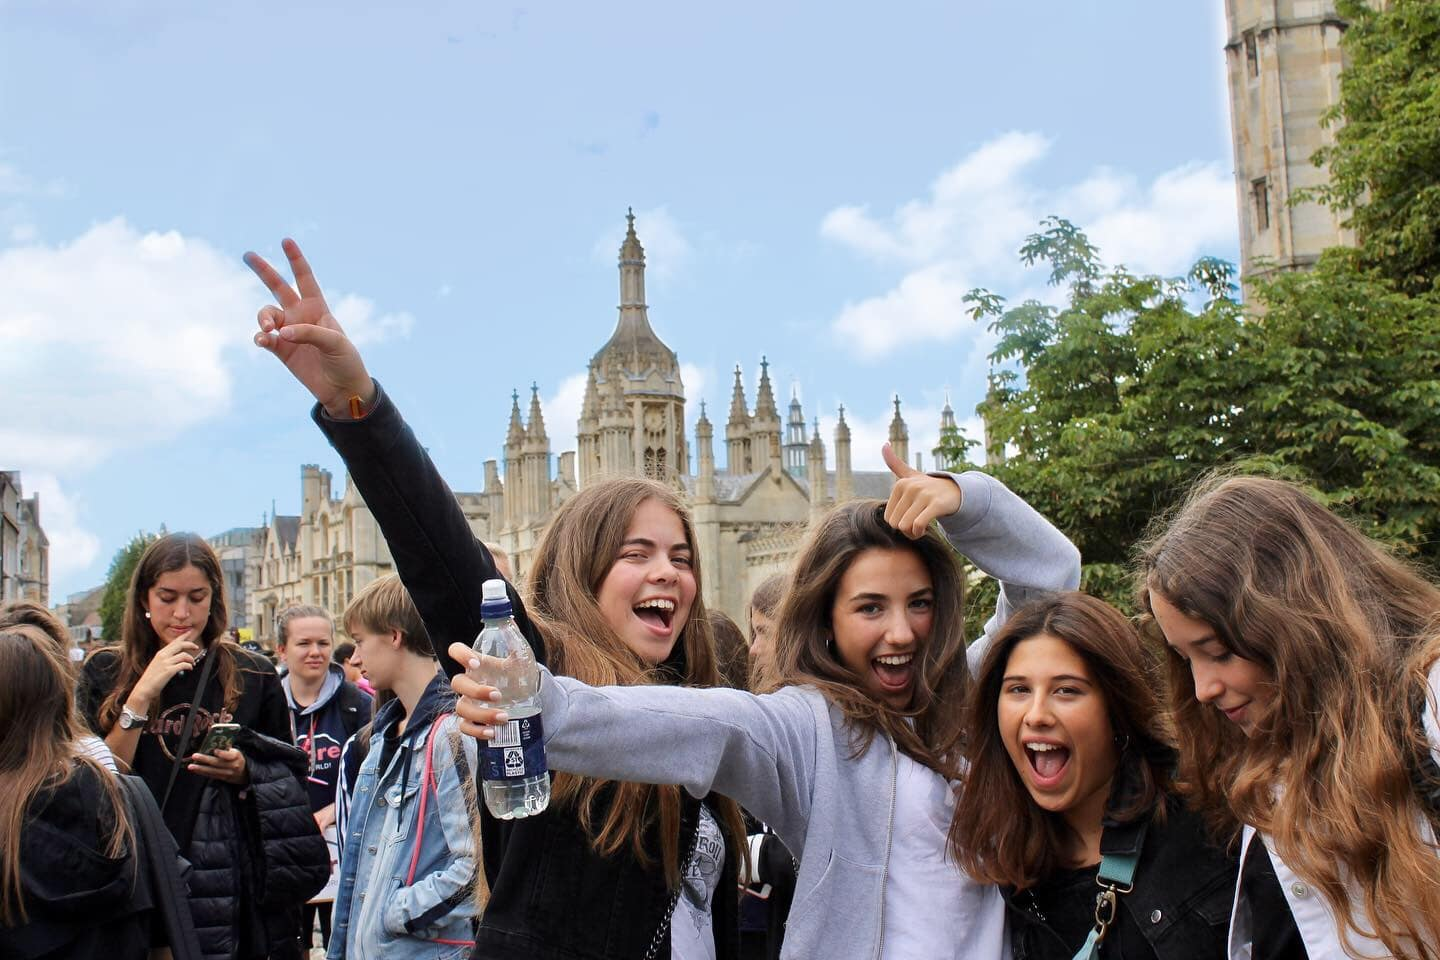 London Excursion Students